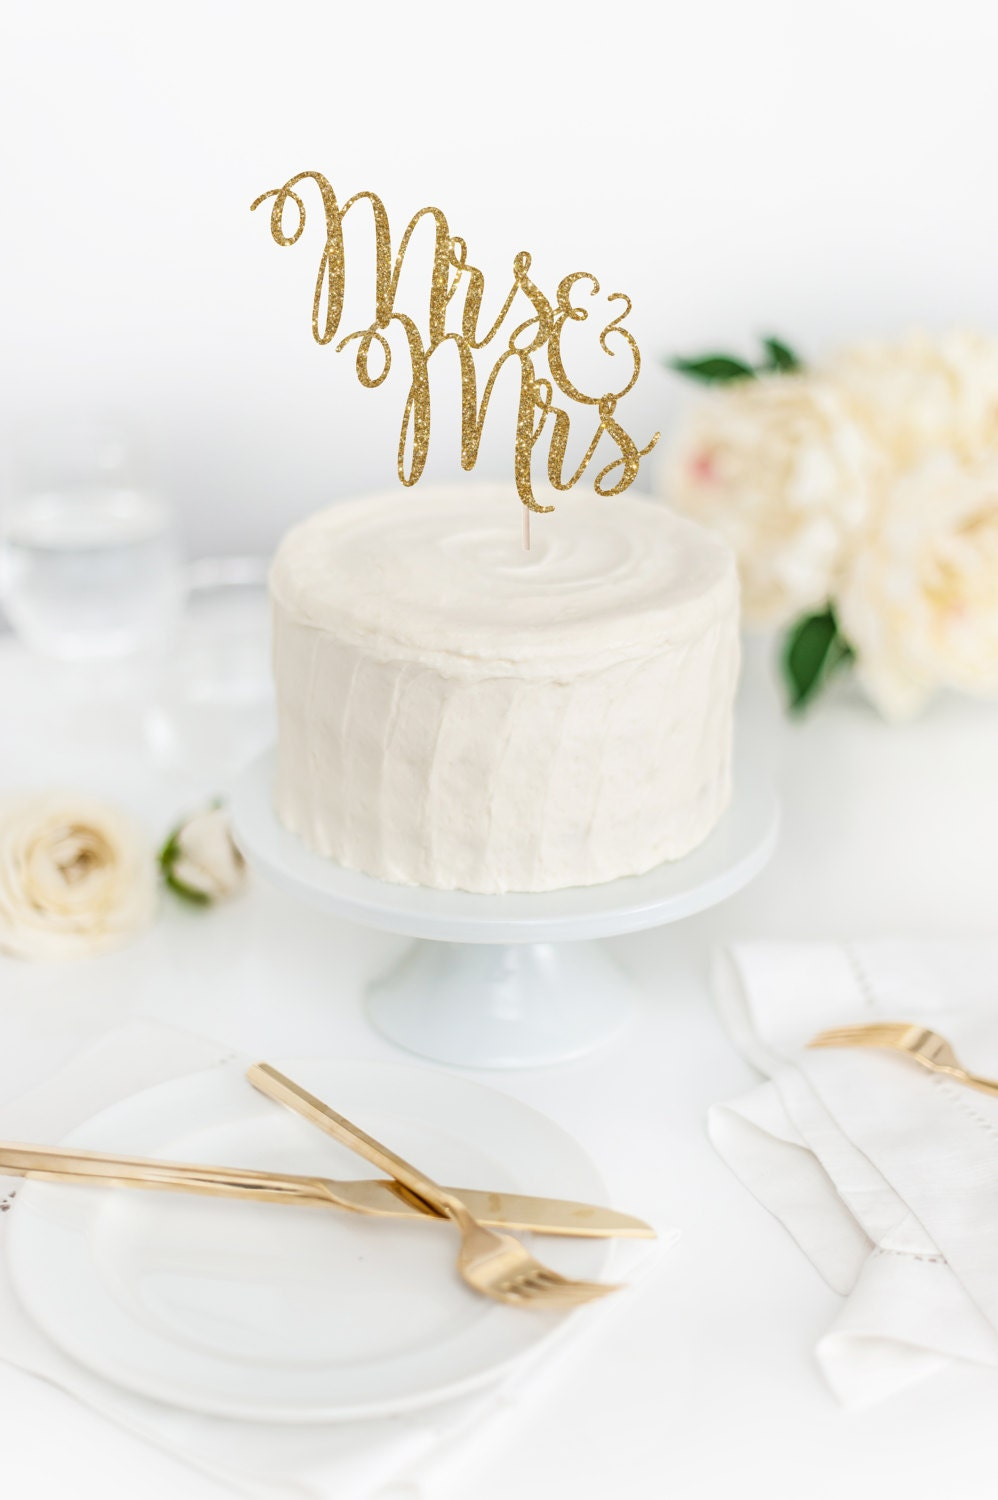 Mrs & Mrs Cake Topper - Wedding Cake Topper - Two Brides Cake Topper ...